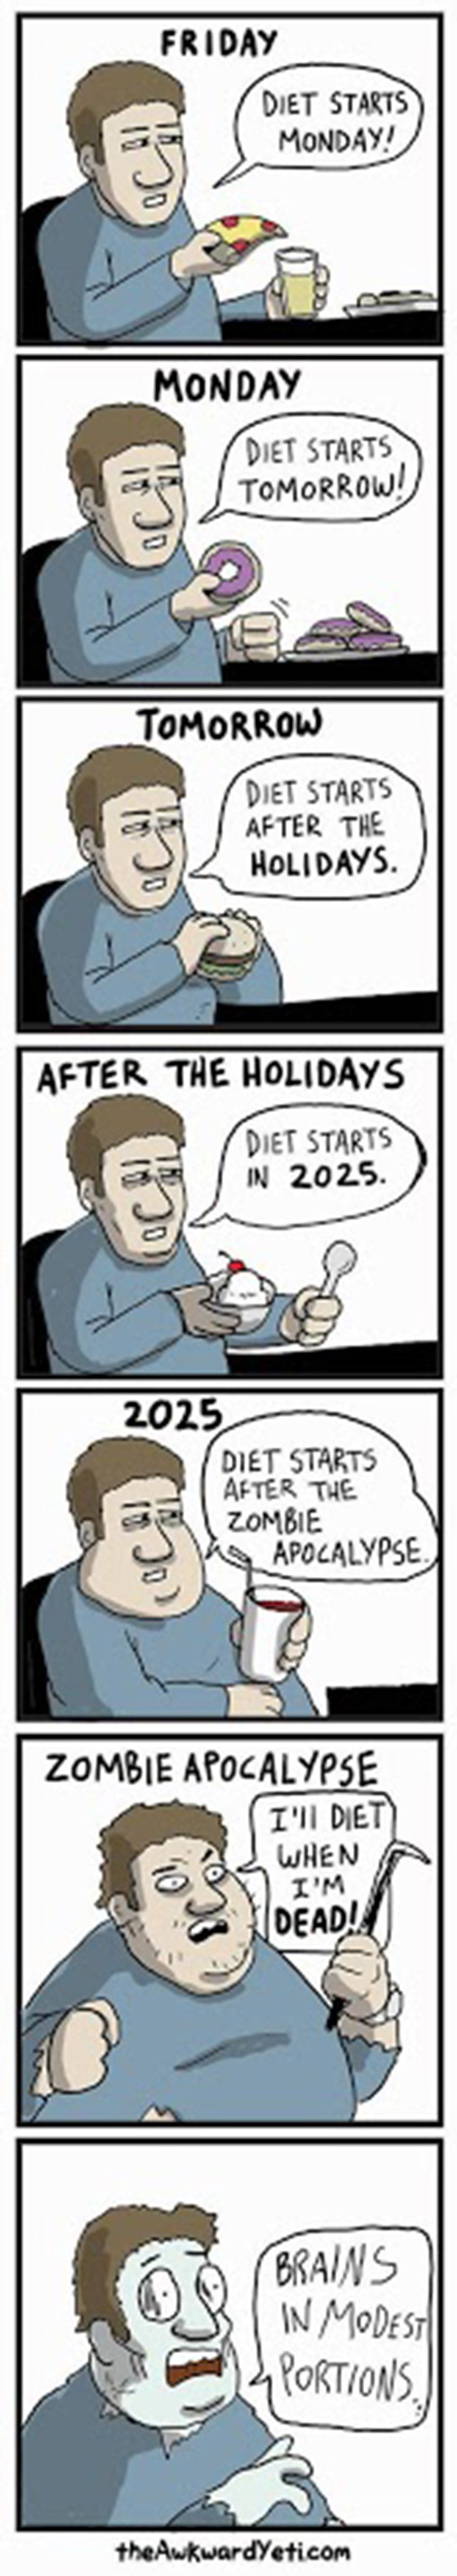 Dieting. It's a path of procrastination at times...